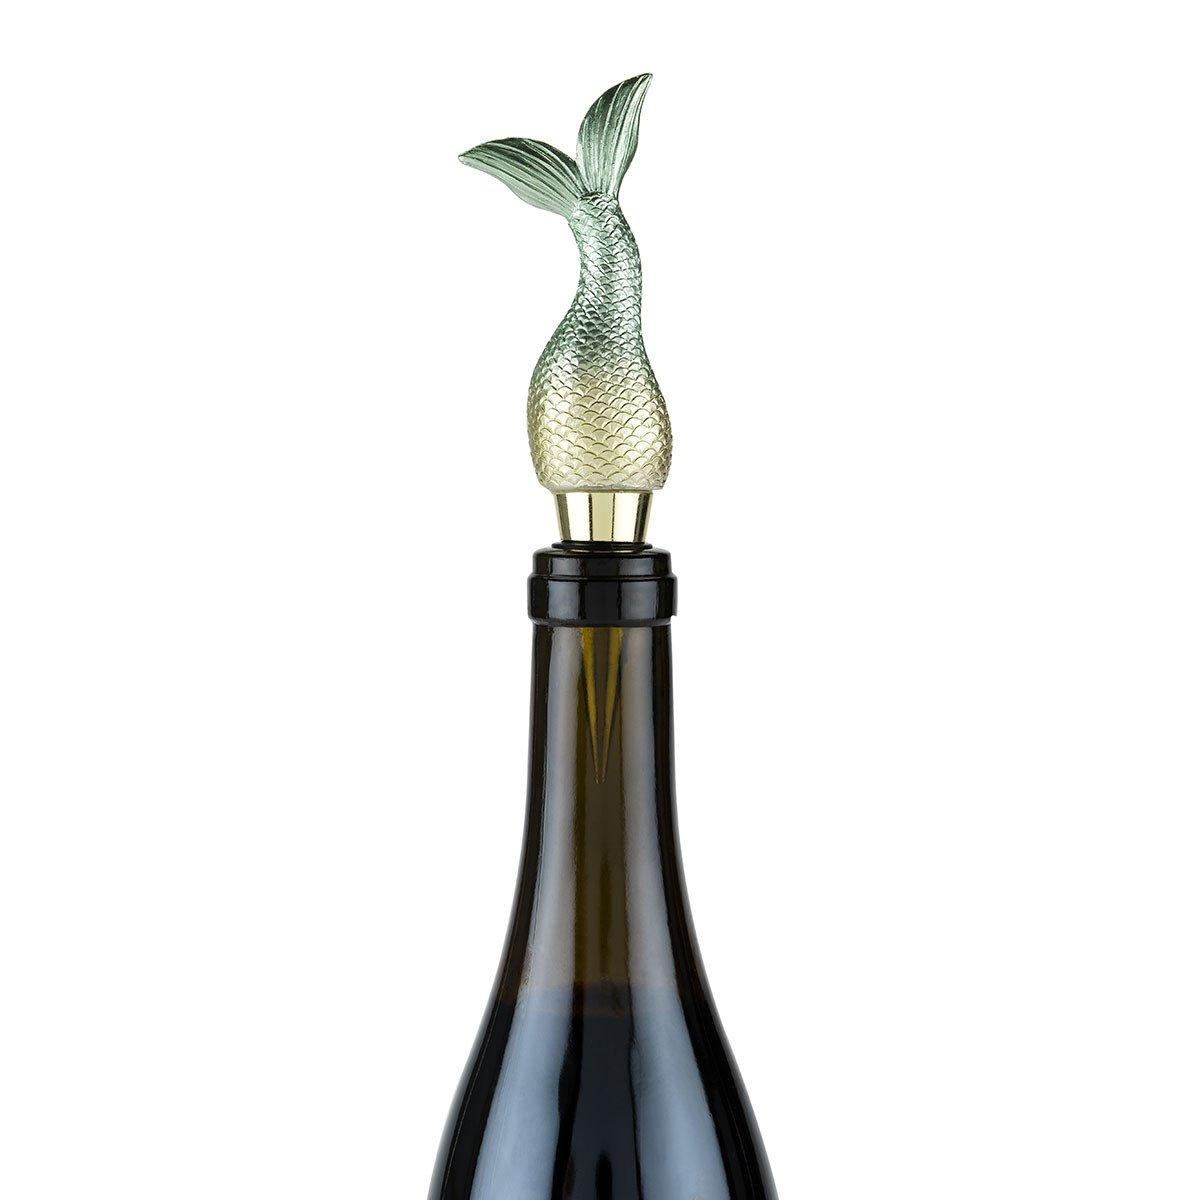 Siren / Mermaid Wine Bottle Stopper - Uberstar.com